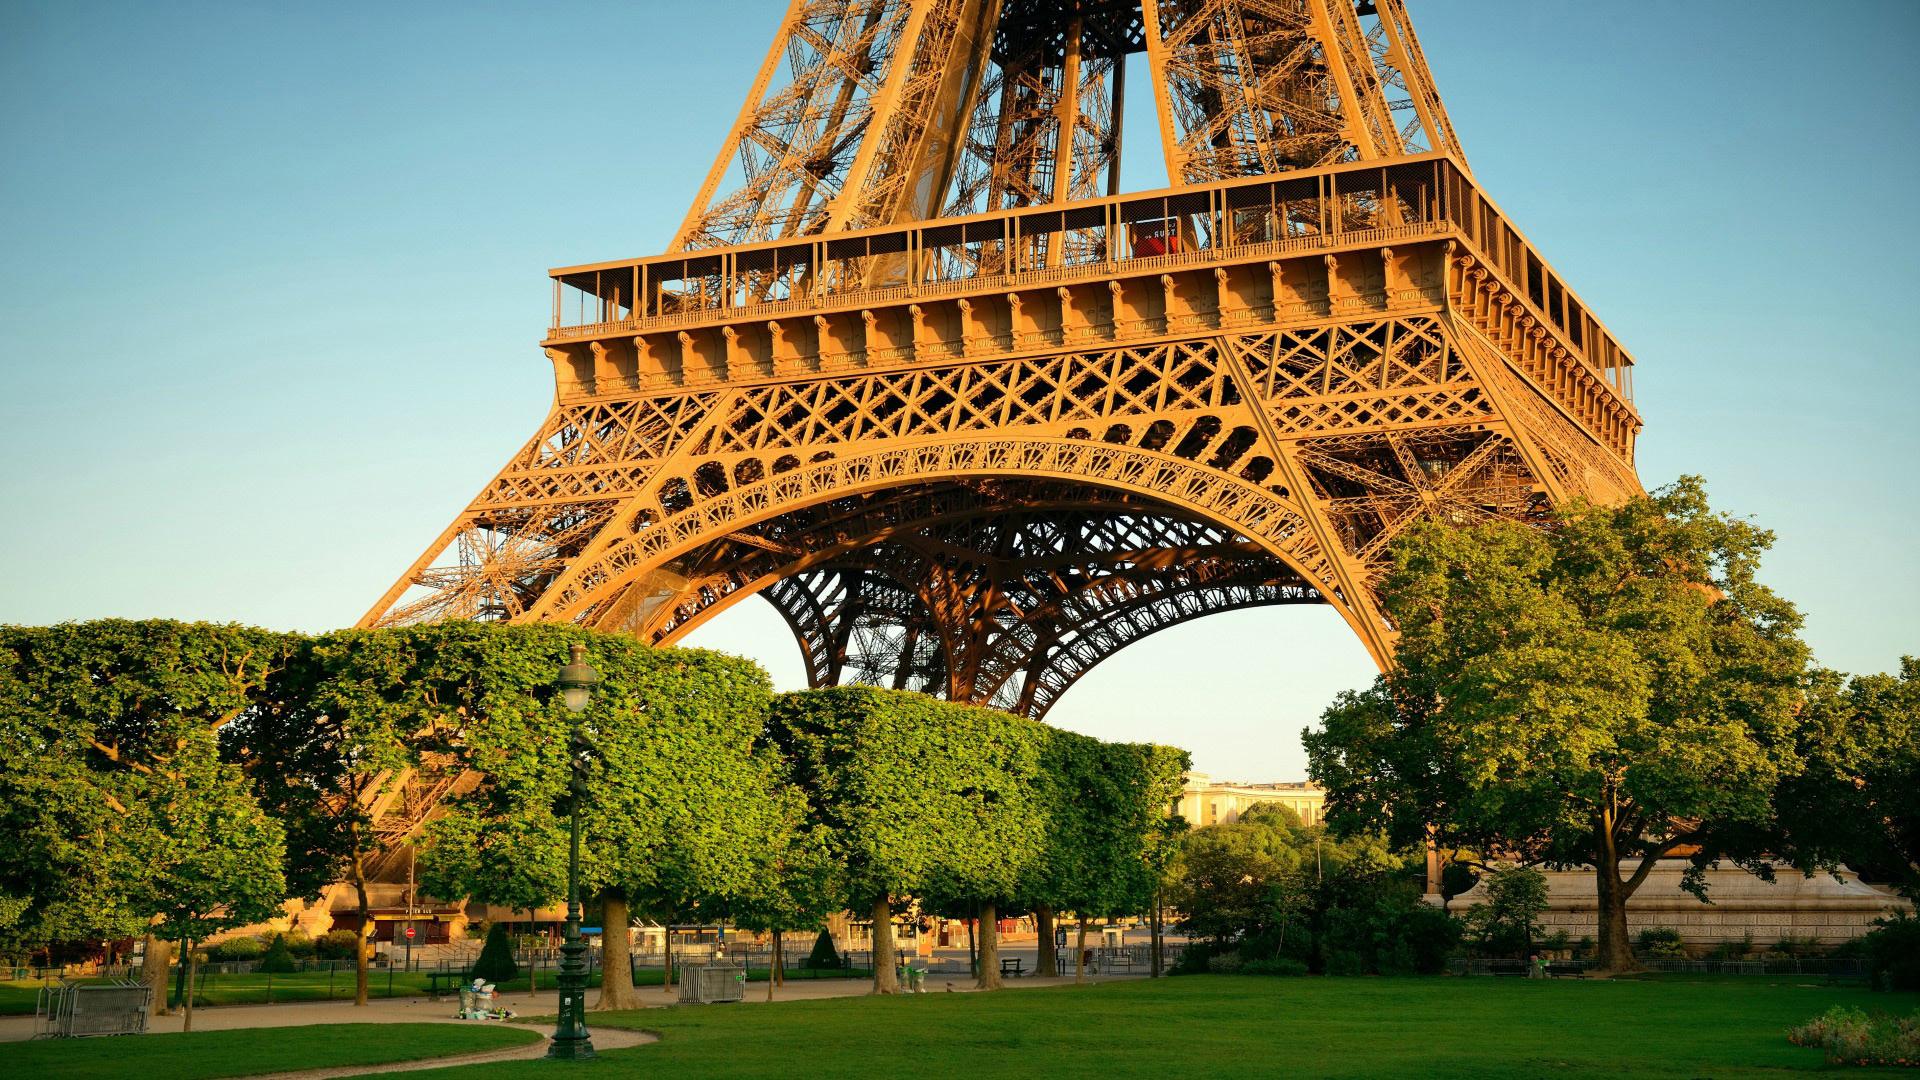 The Eiffel Tower is only a two minute walk away